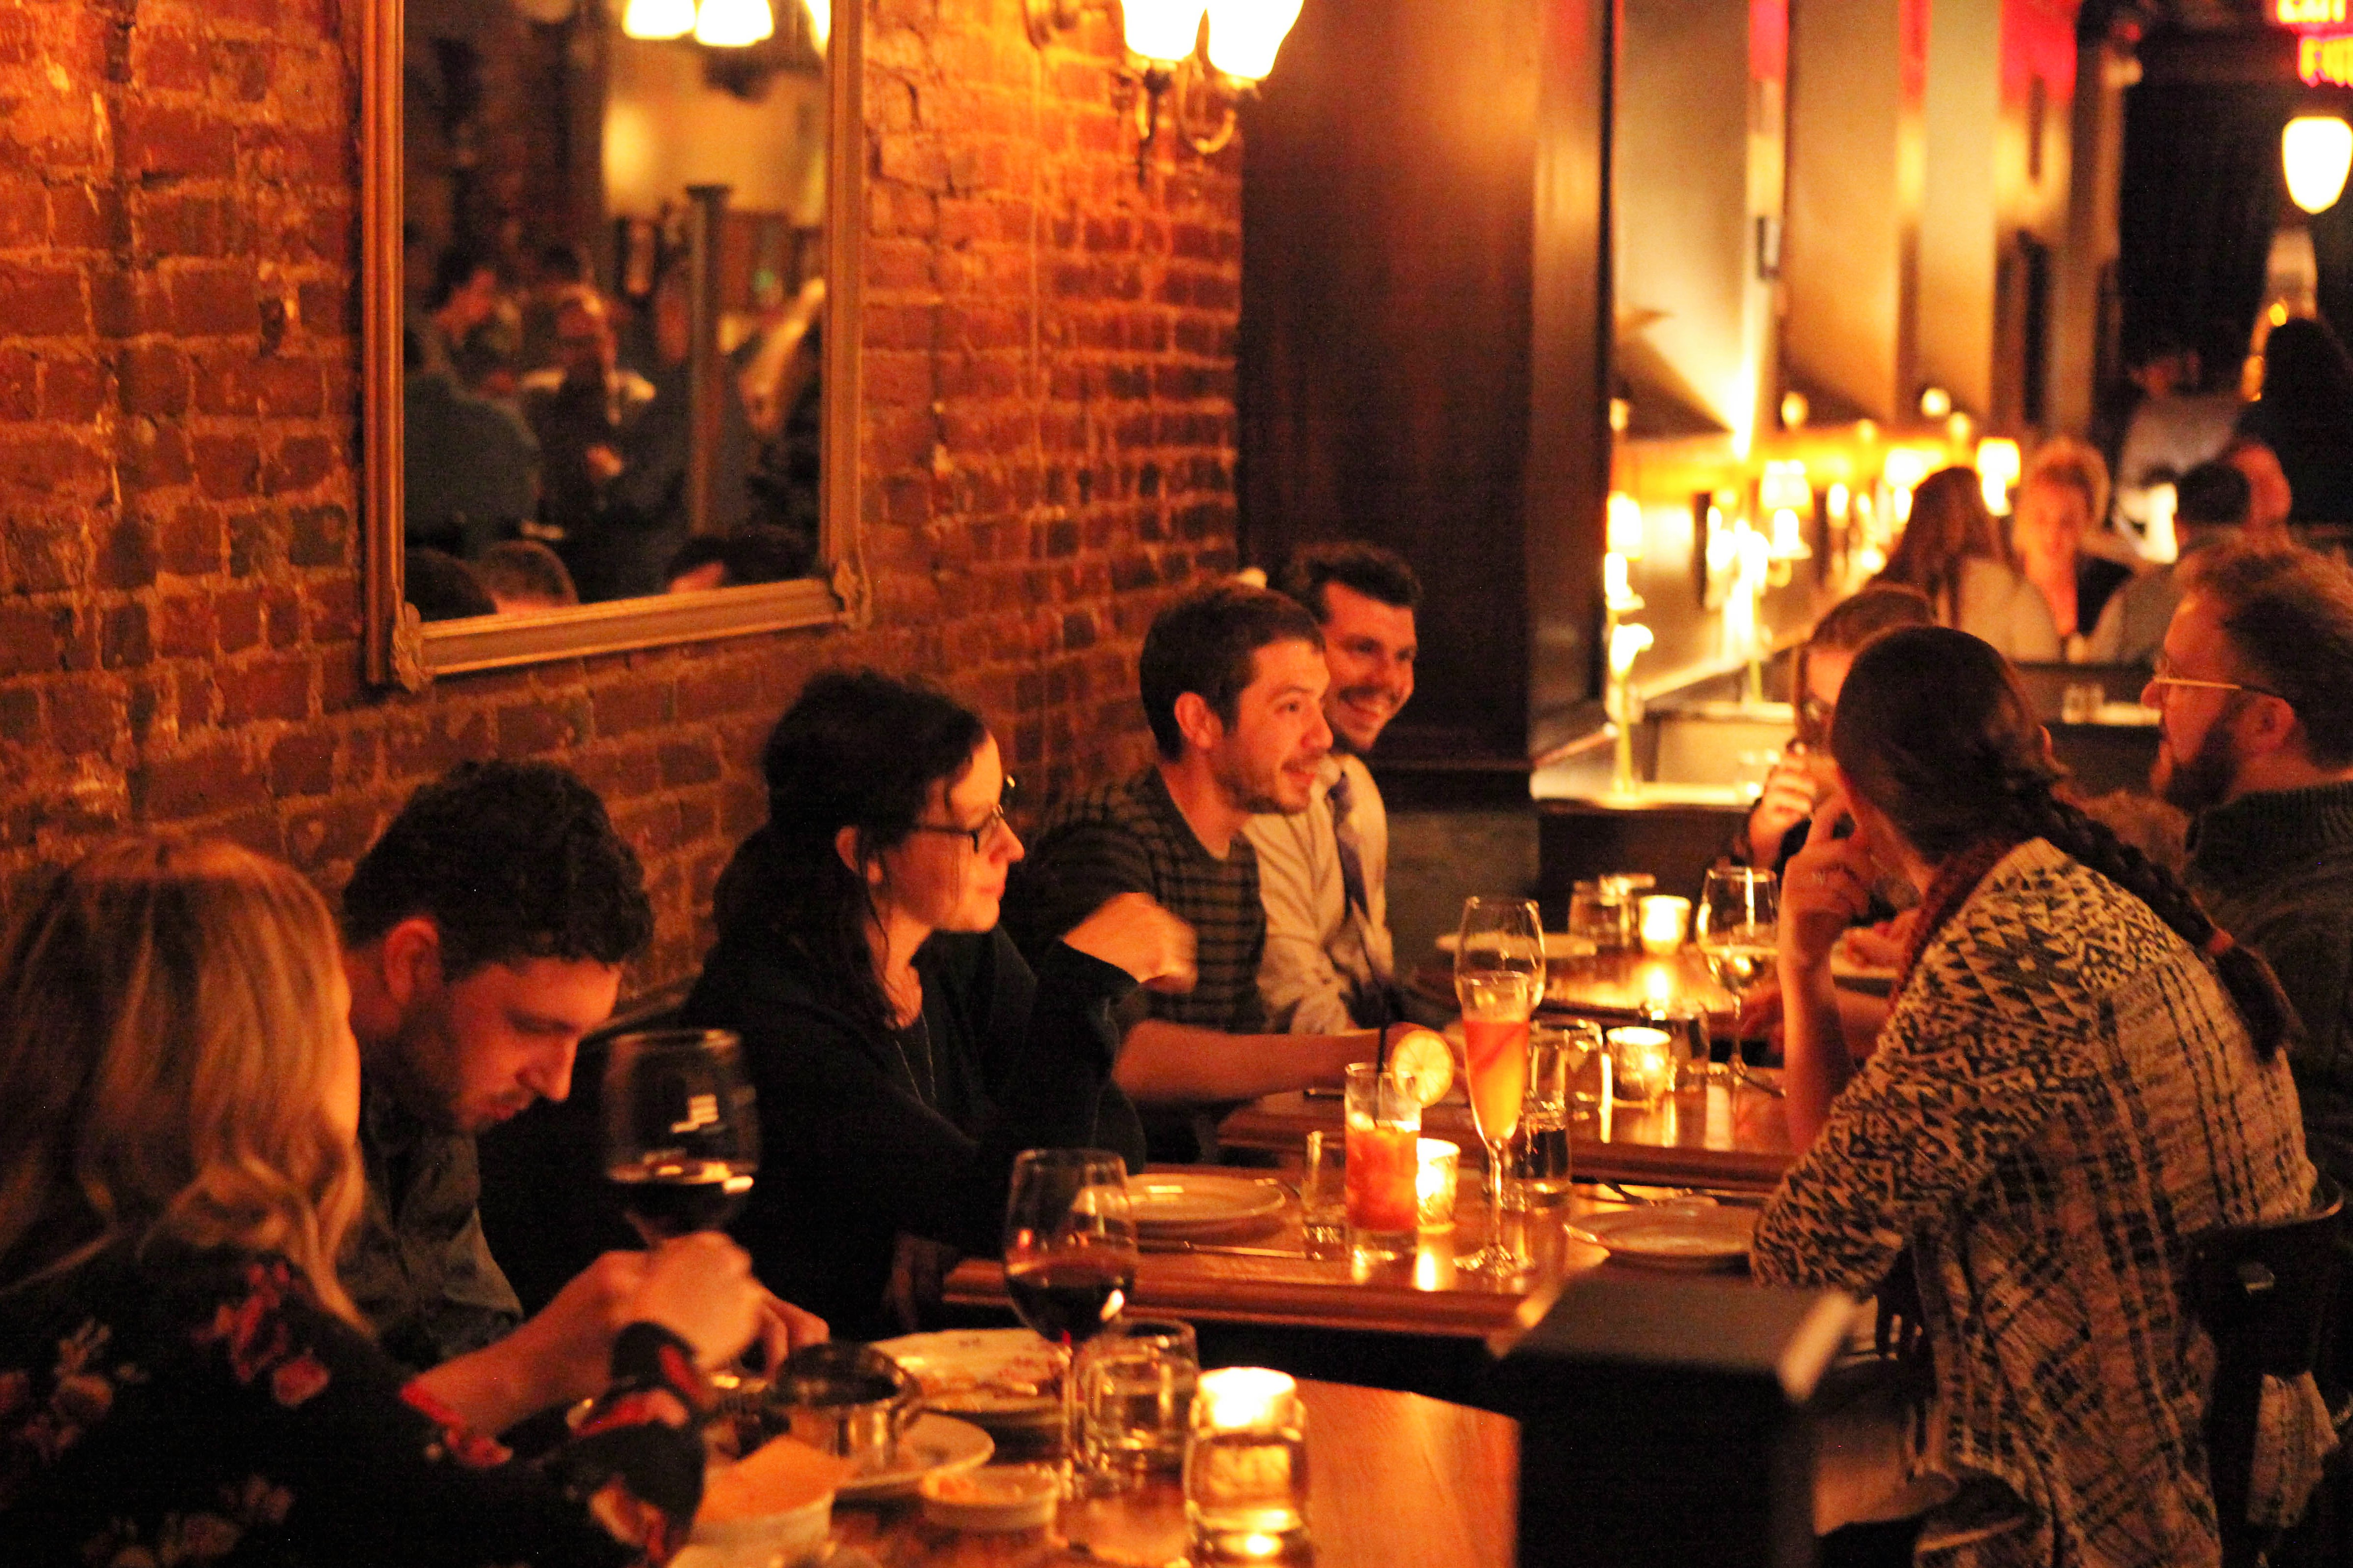 diners at tables in a candlelit restaurant with a brick wall